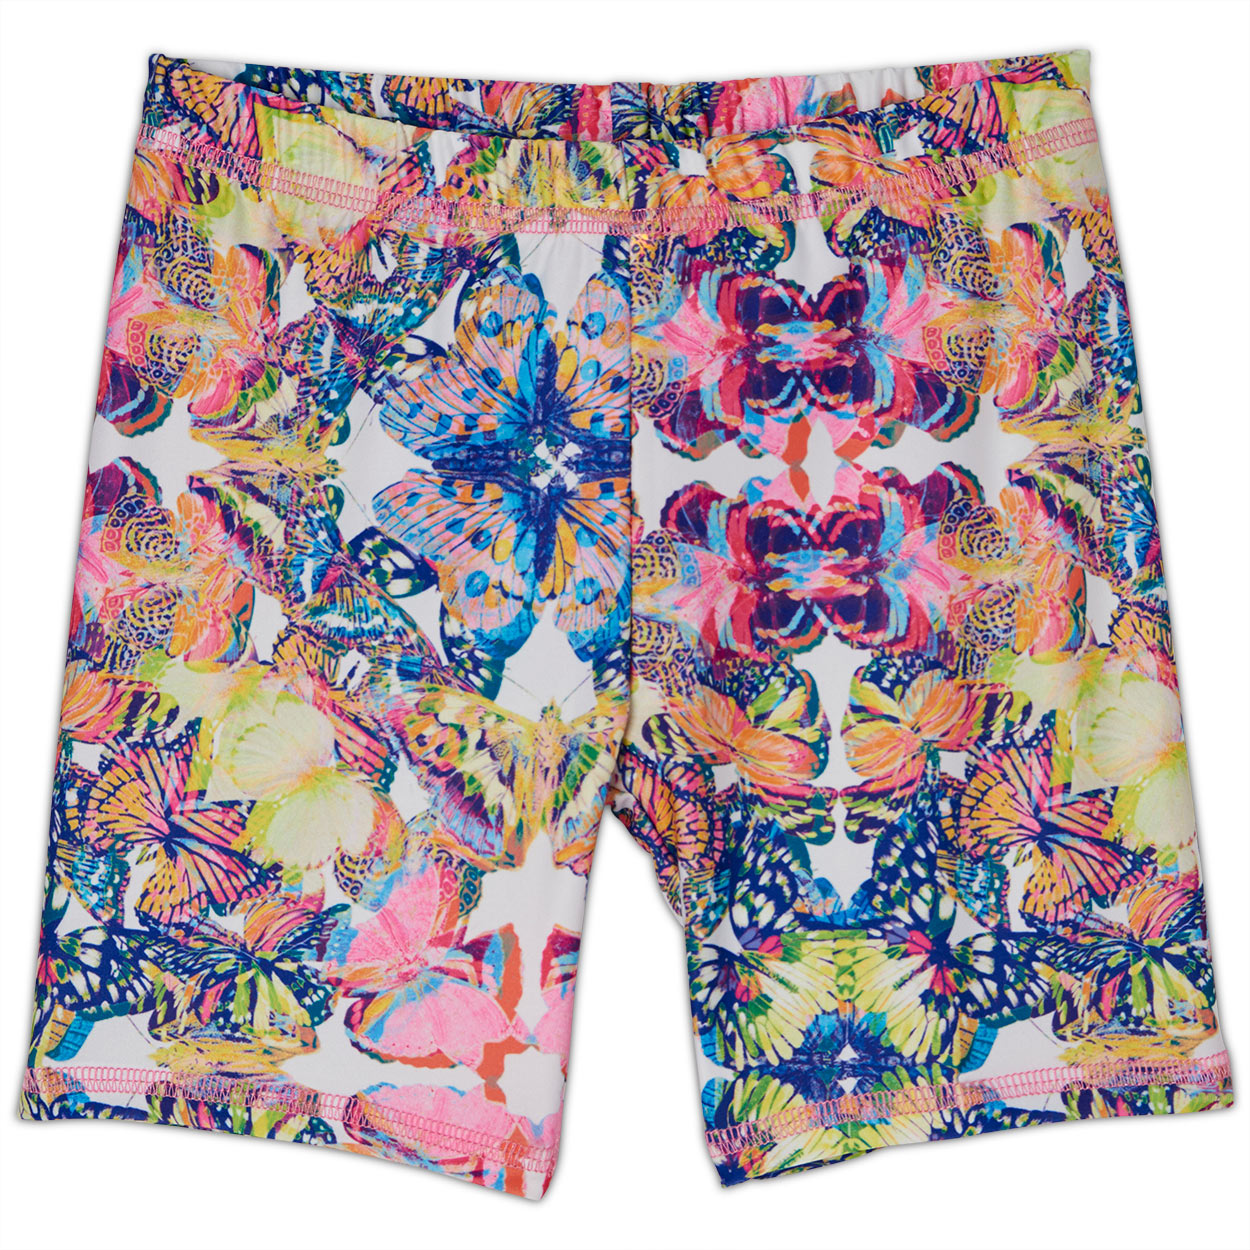 Butterflies Hybrid Shorts Upf50 Girls Size 2 12 Multicolor Opaline World Sunpoplife